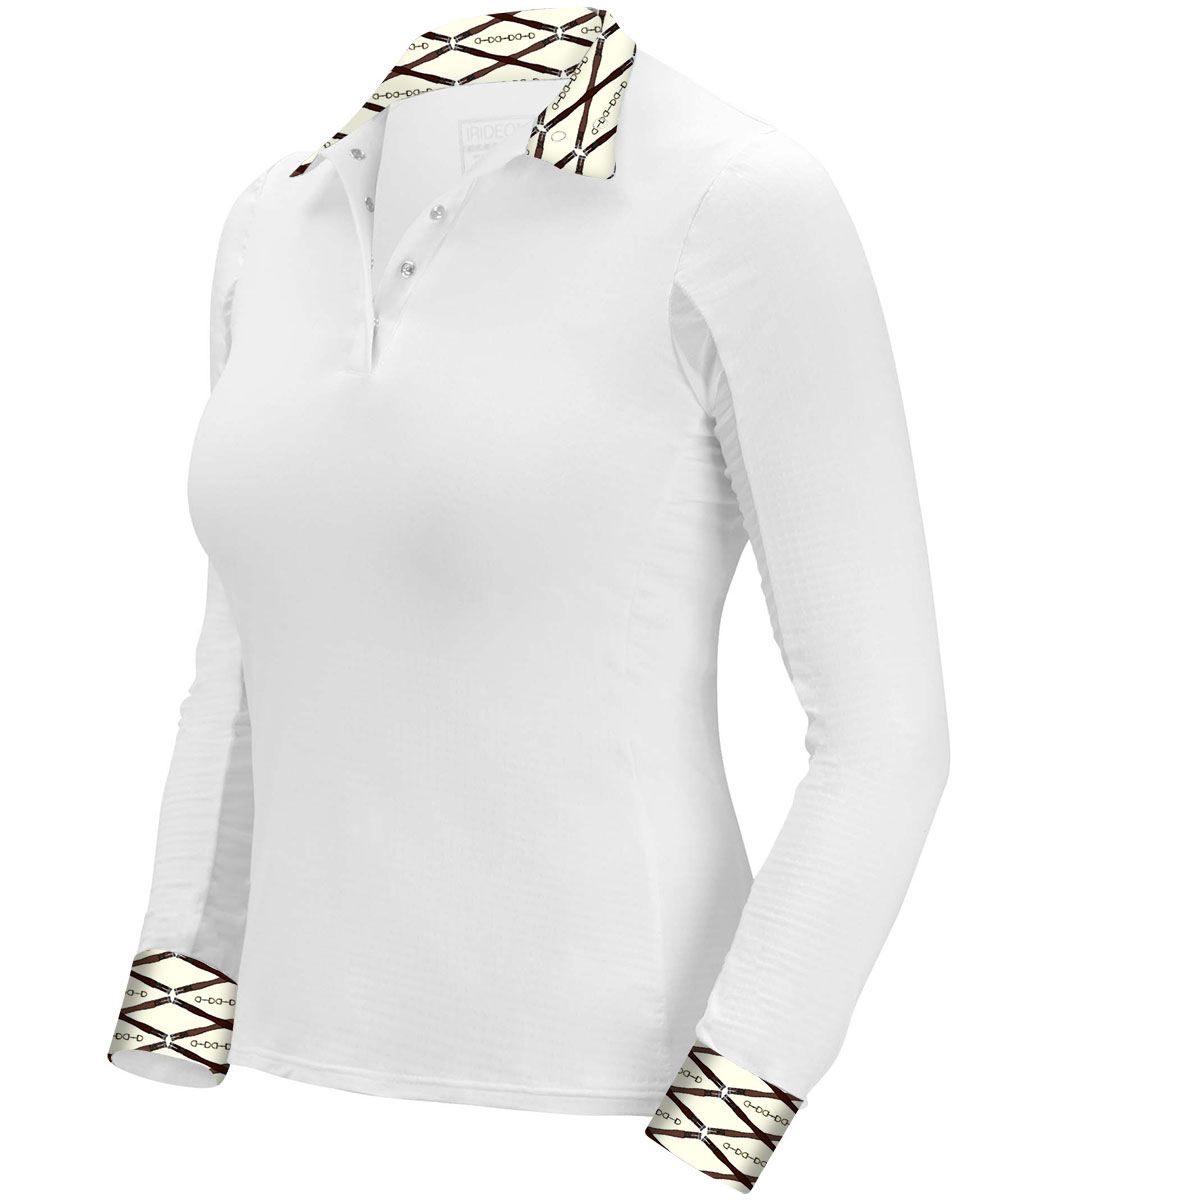 Irideon Cooldown Icefil Long Sleeve Ladies Show Shirt